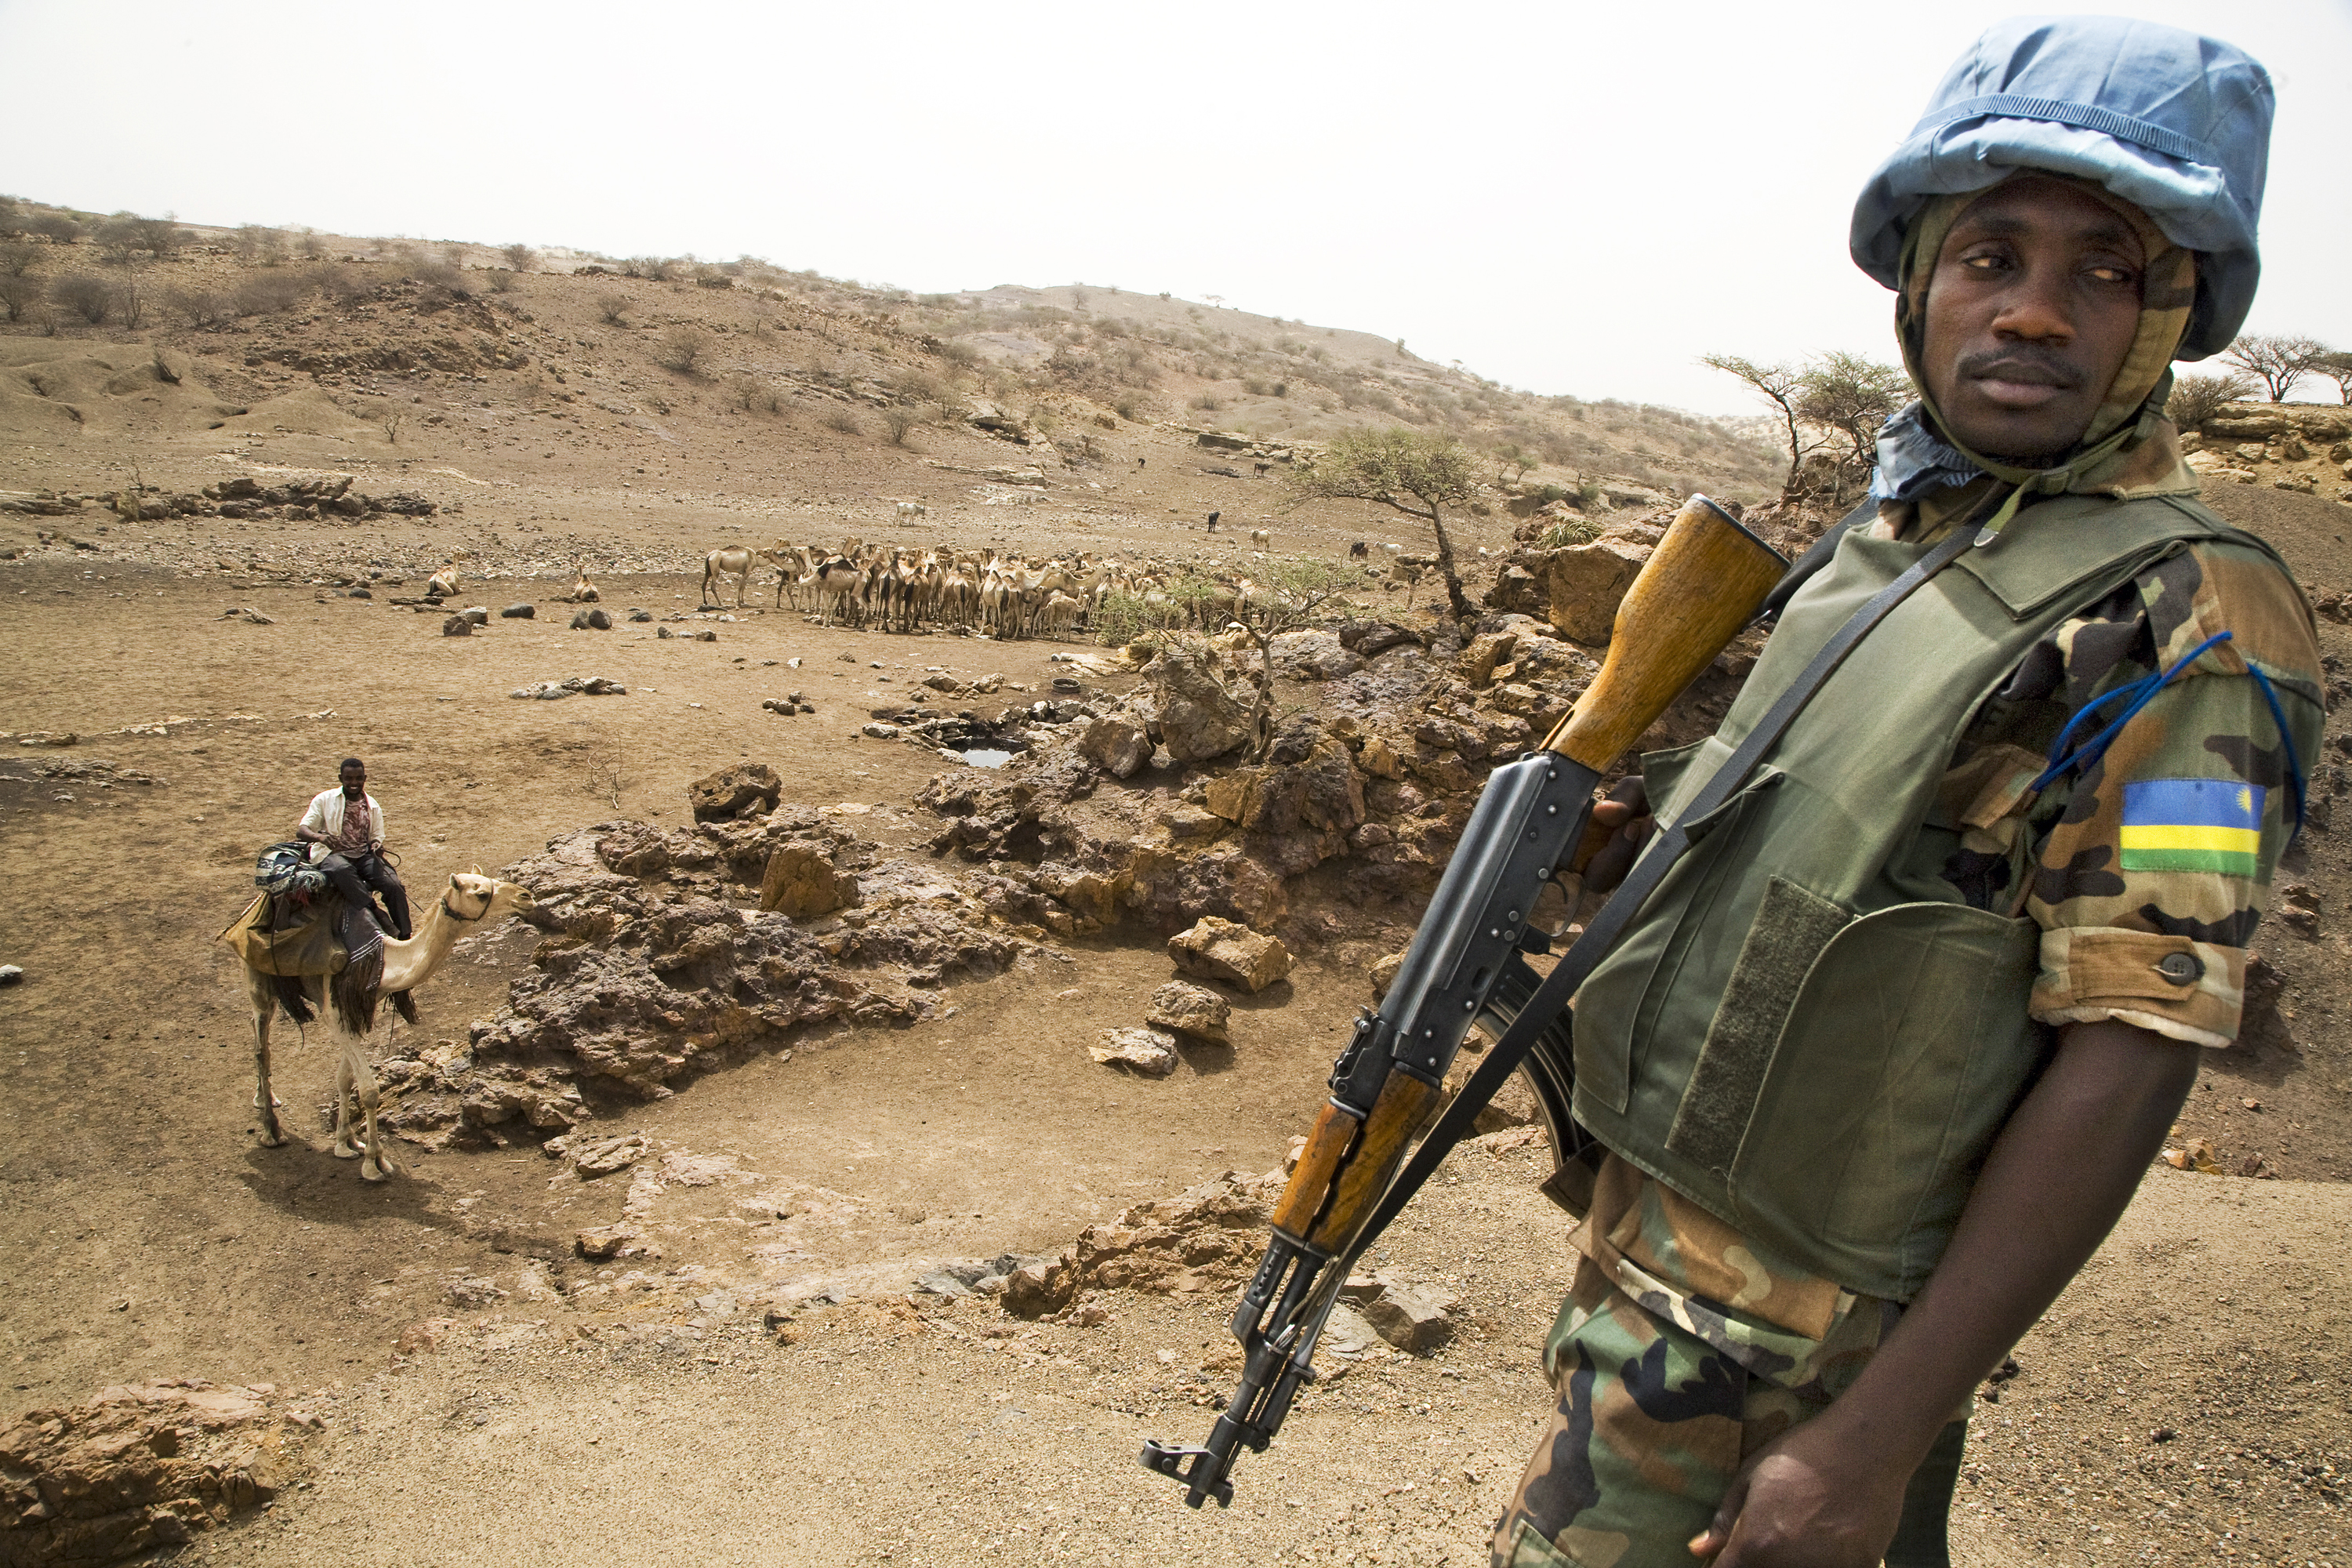 It is determined that the situation in Sudan is a threat to international peace and security, and the Court leads an investigation into reports of violations of international humanitarian law and human rights law in Darfur by all parties. Image courtesy: U.N.